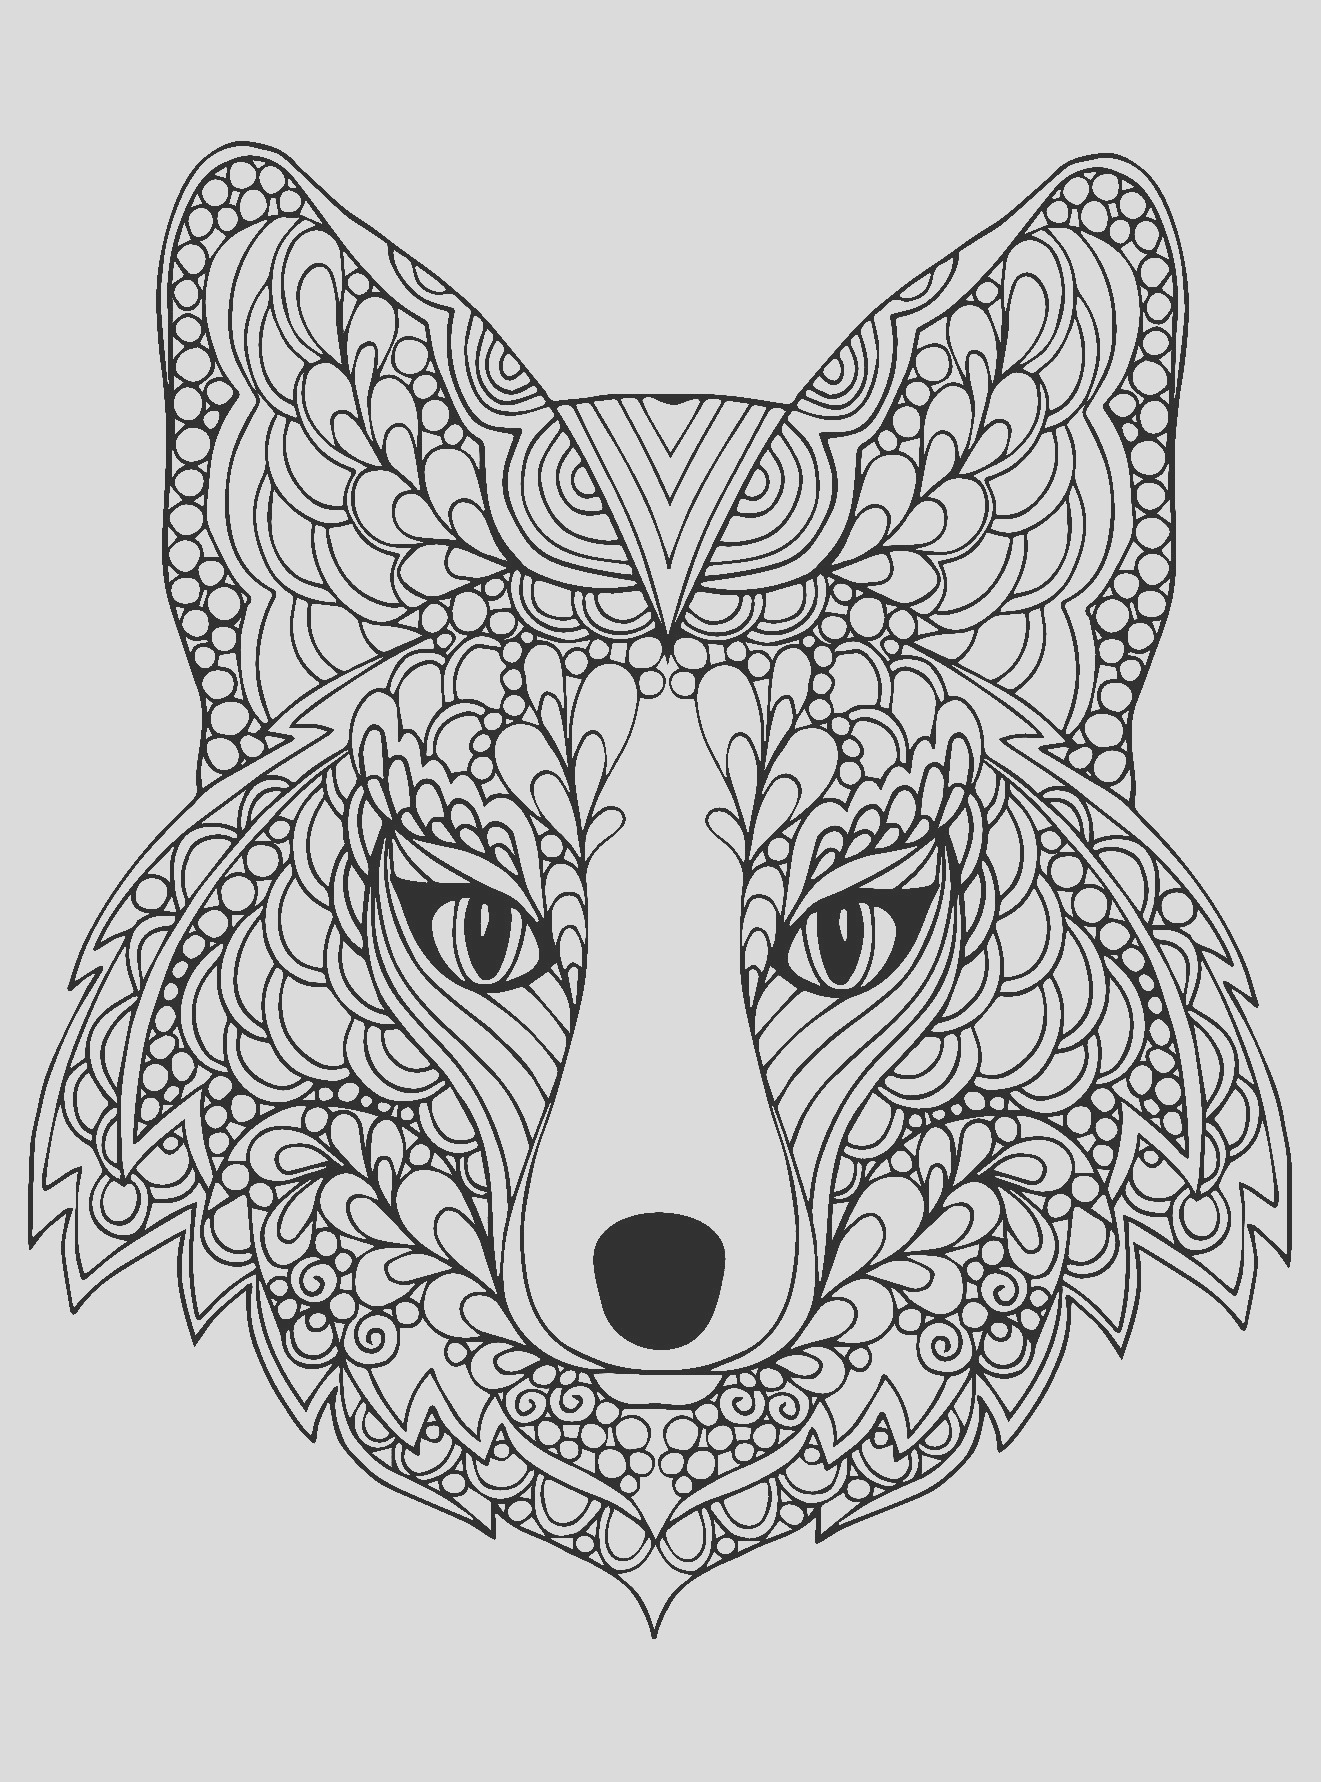 image=foxes coloring page beutiful fox head 1